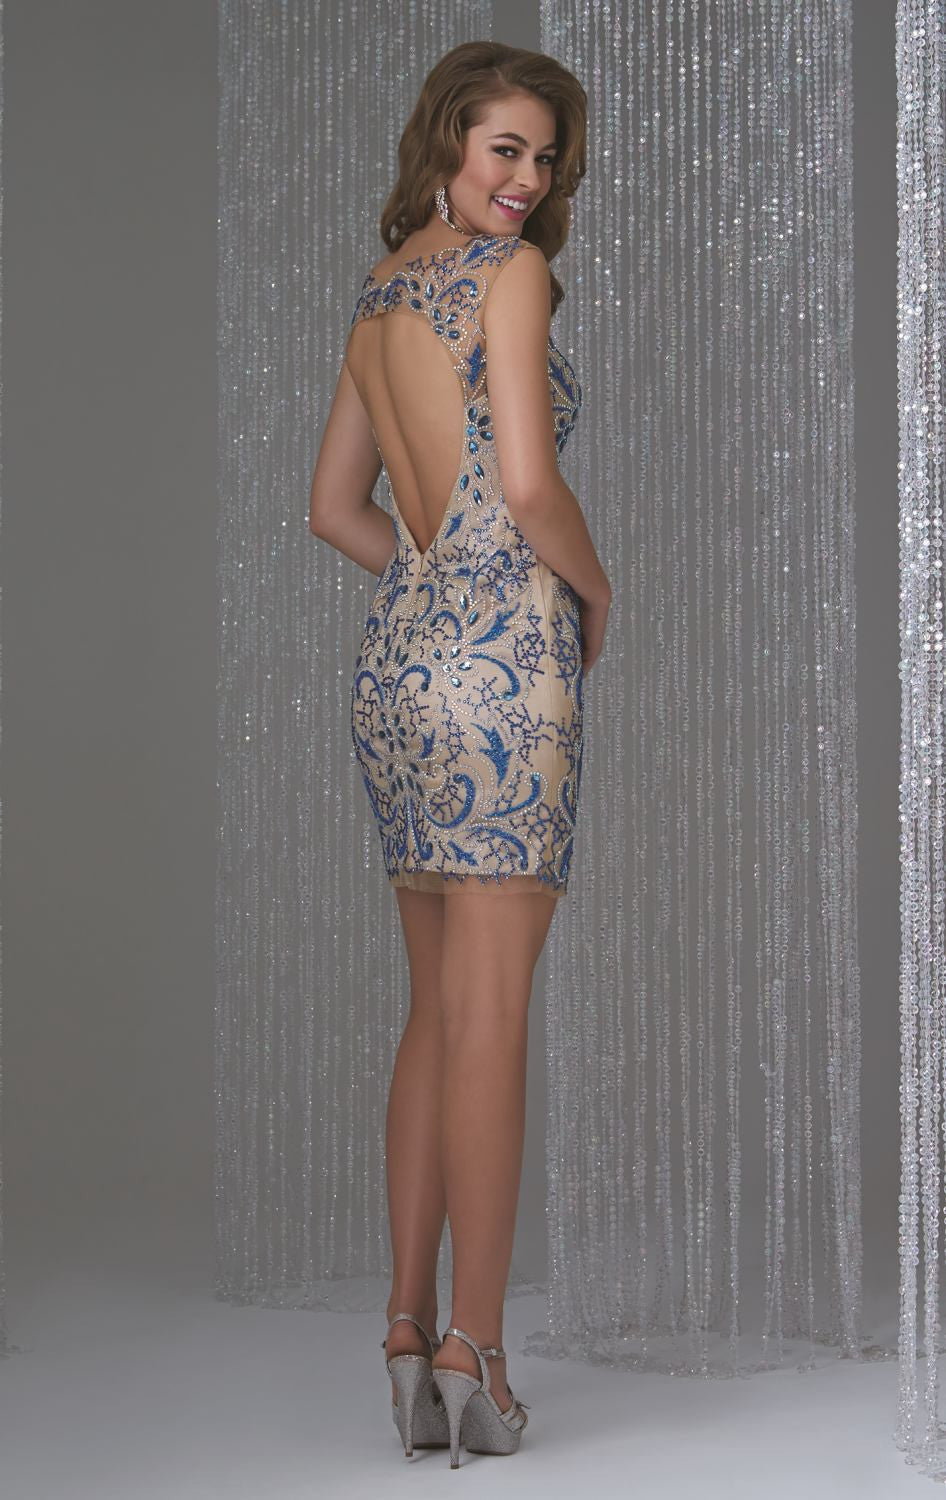 Her Fashion Beaded Embroidery Open Back Cocktail Dress